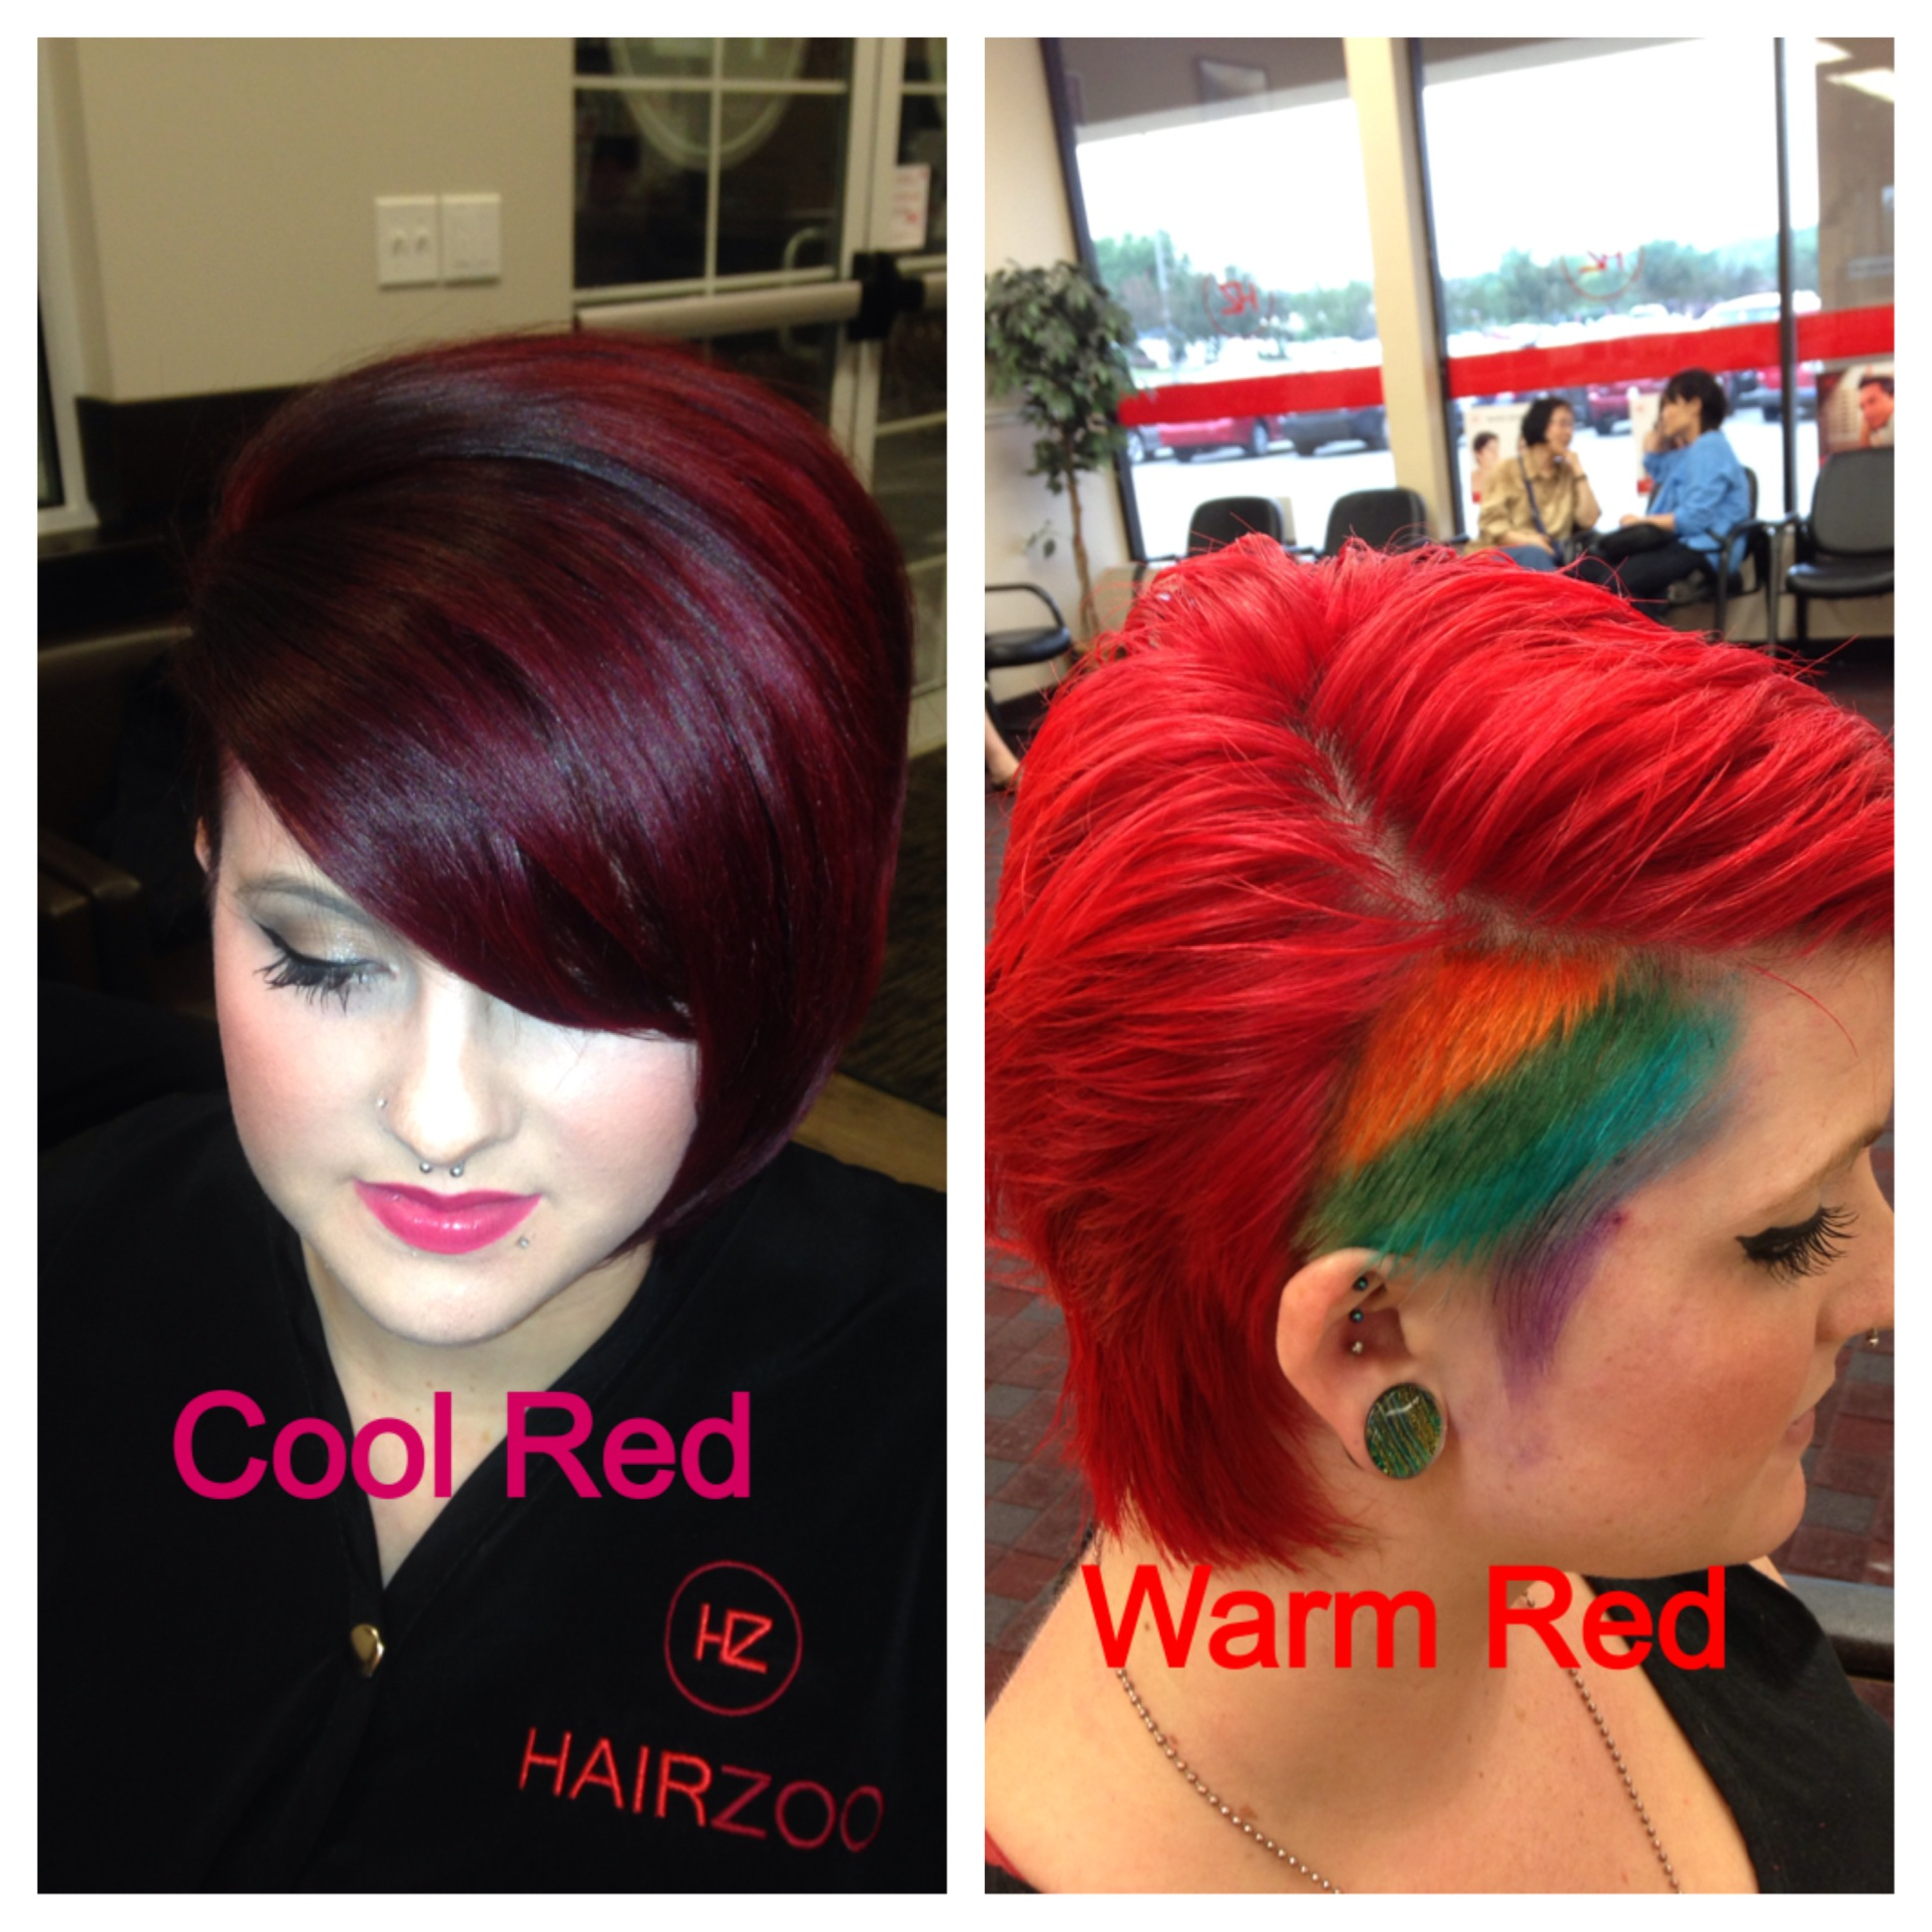 Warm vs Cool Tones and Men's Cowlicks